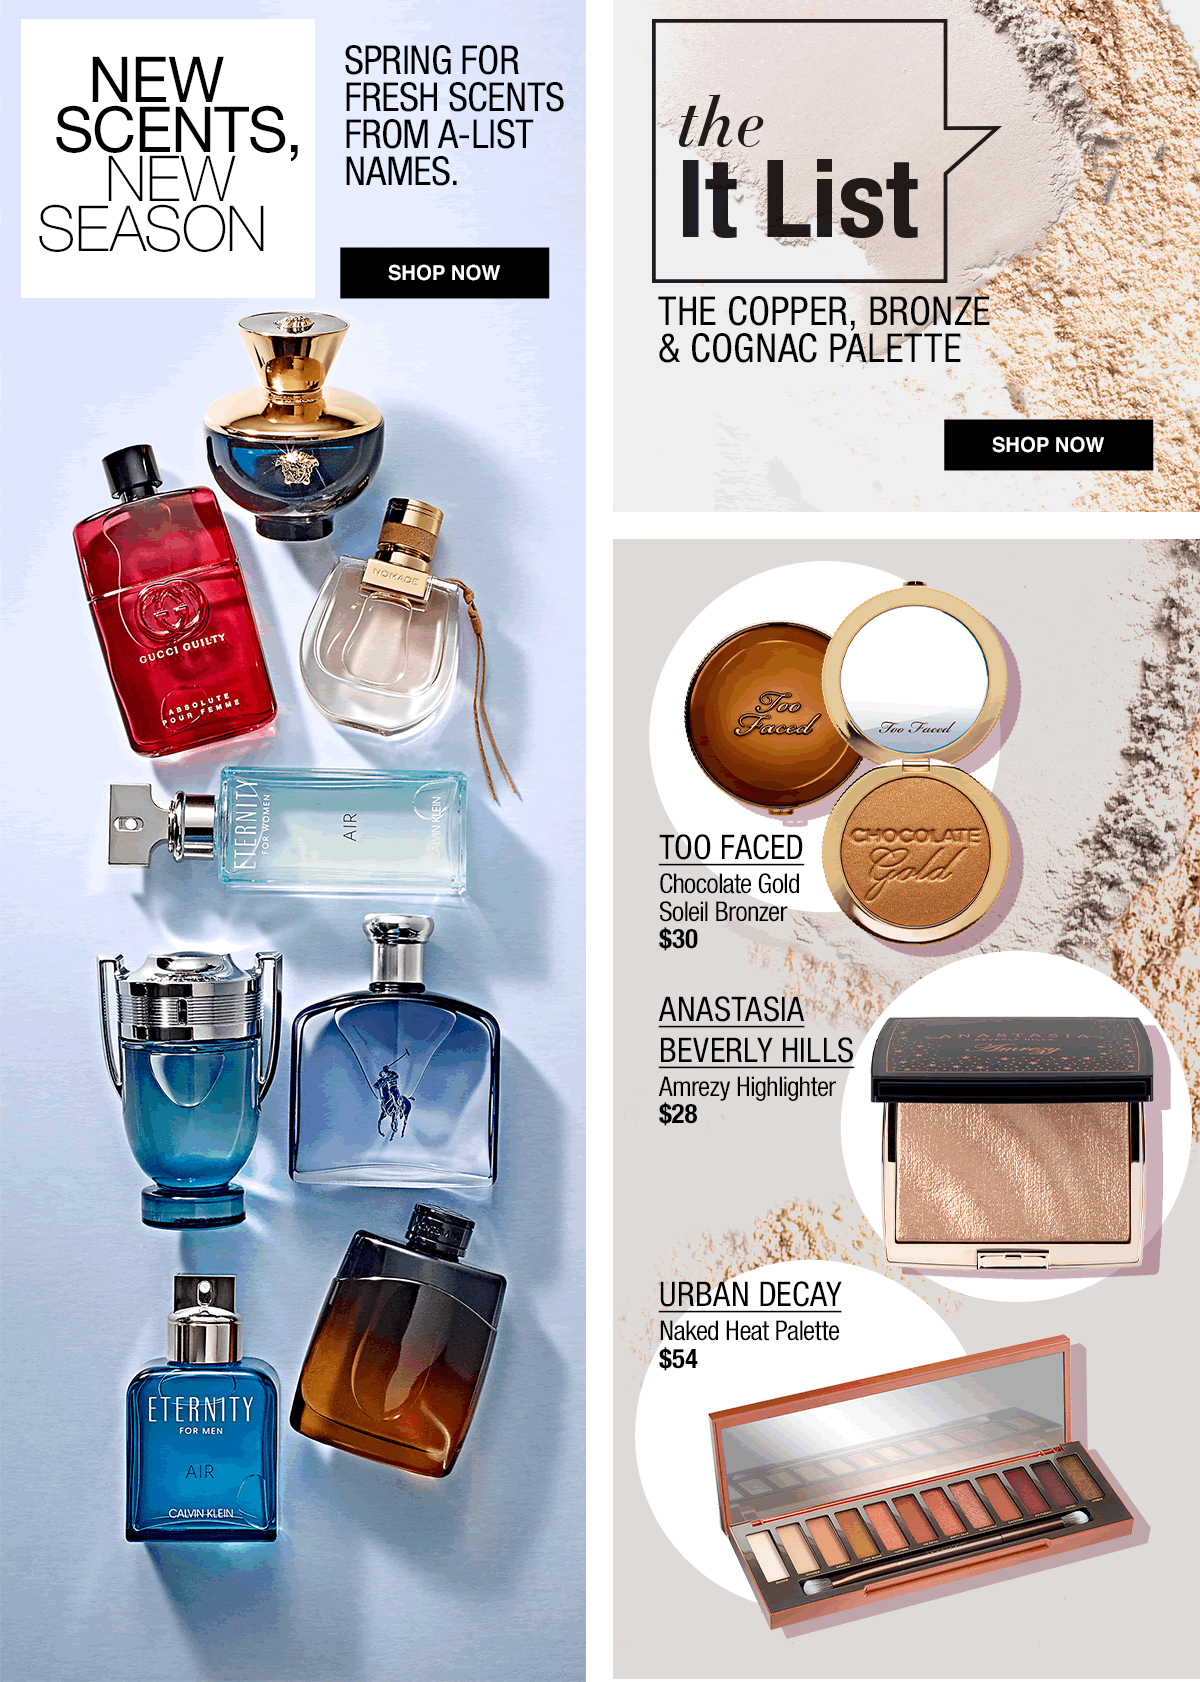 New Scents, New Season, Spring for Fresh Scents From A-List Names, Shop now, the it List, The Copper, Bronze and Cognac Palette, Shop now, Too Faced, Anastasia Beverly Hills, Urban Decay